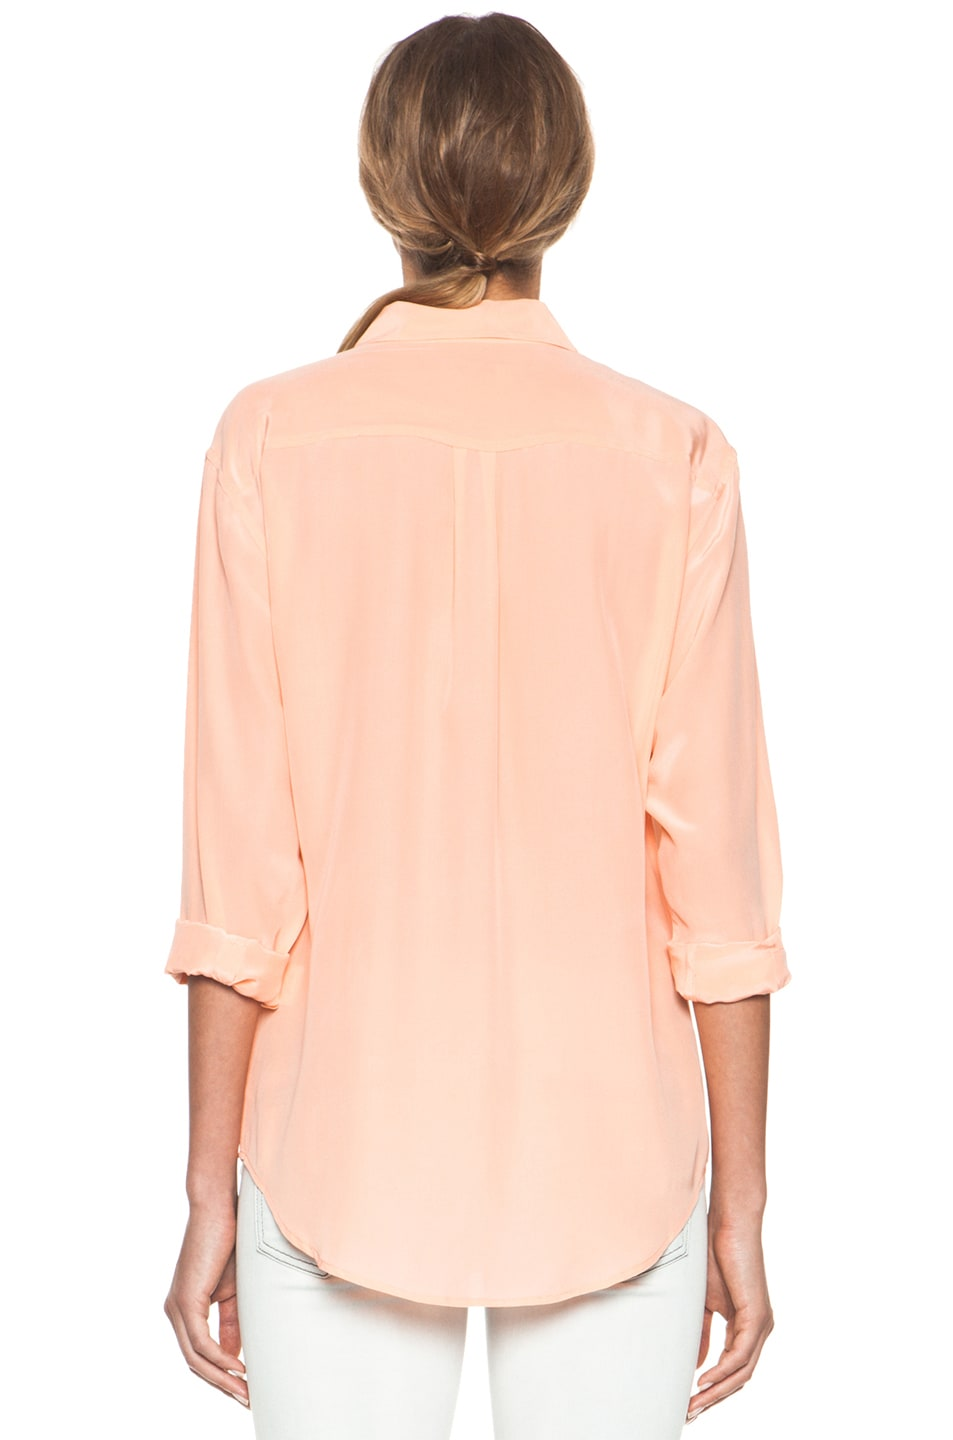 00ea77af7f8a30 Image 4 of Equipment Signature Blouse in Peach Nectar